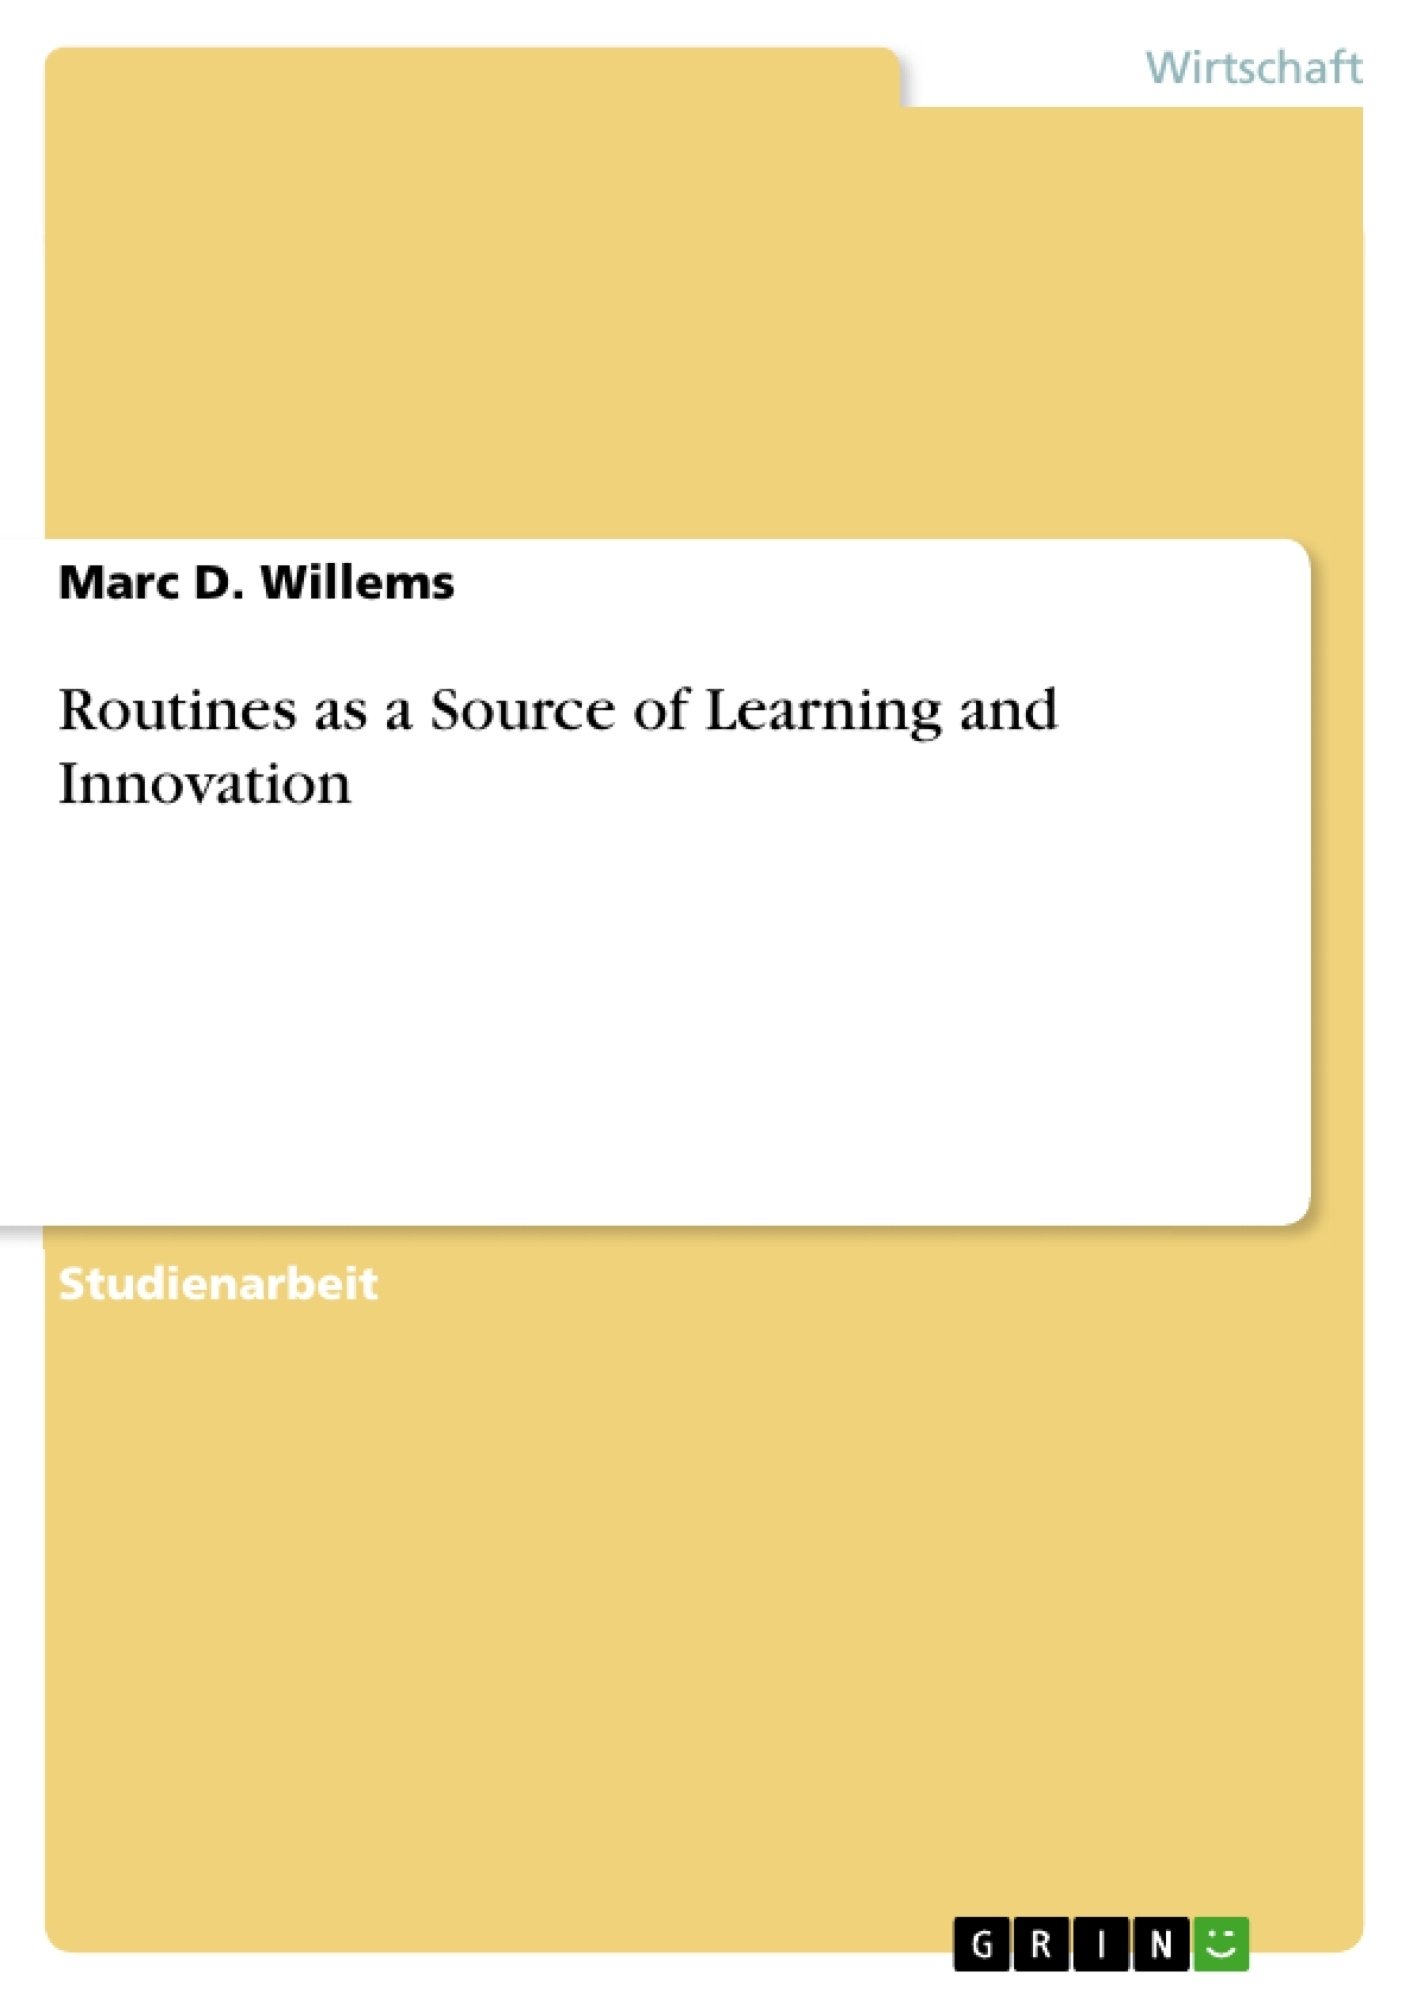 Titel: Routines as a Source of Learning and Innovation